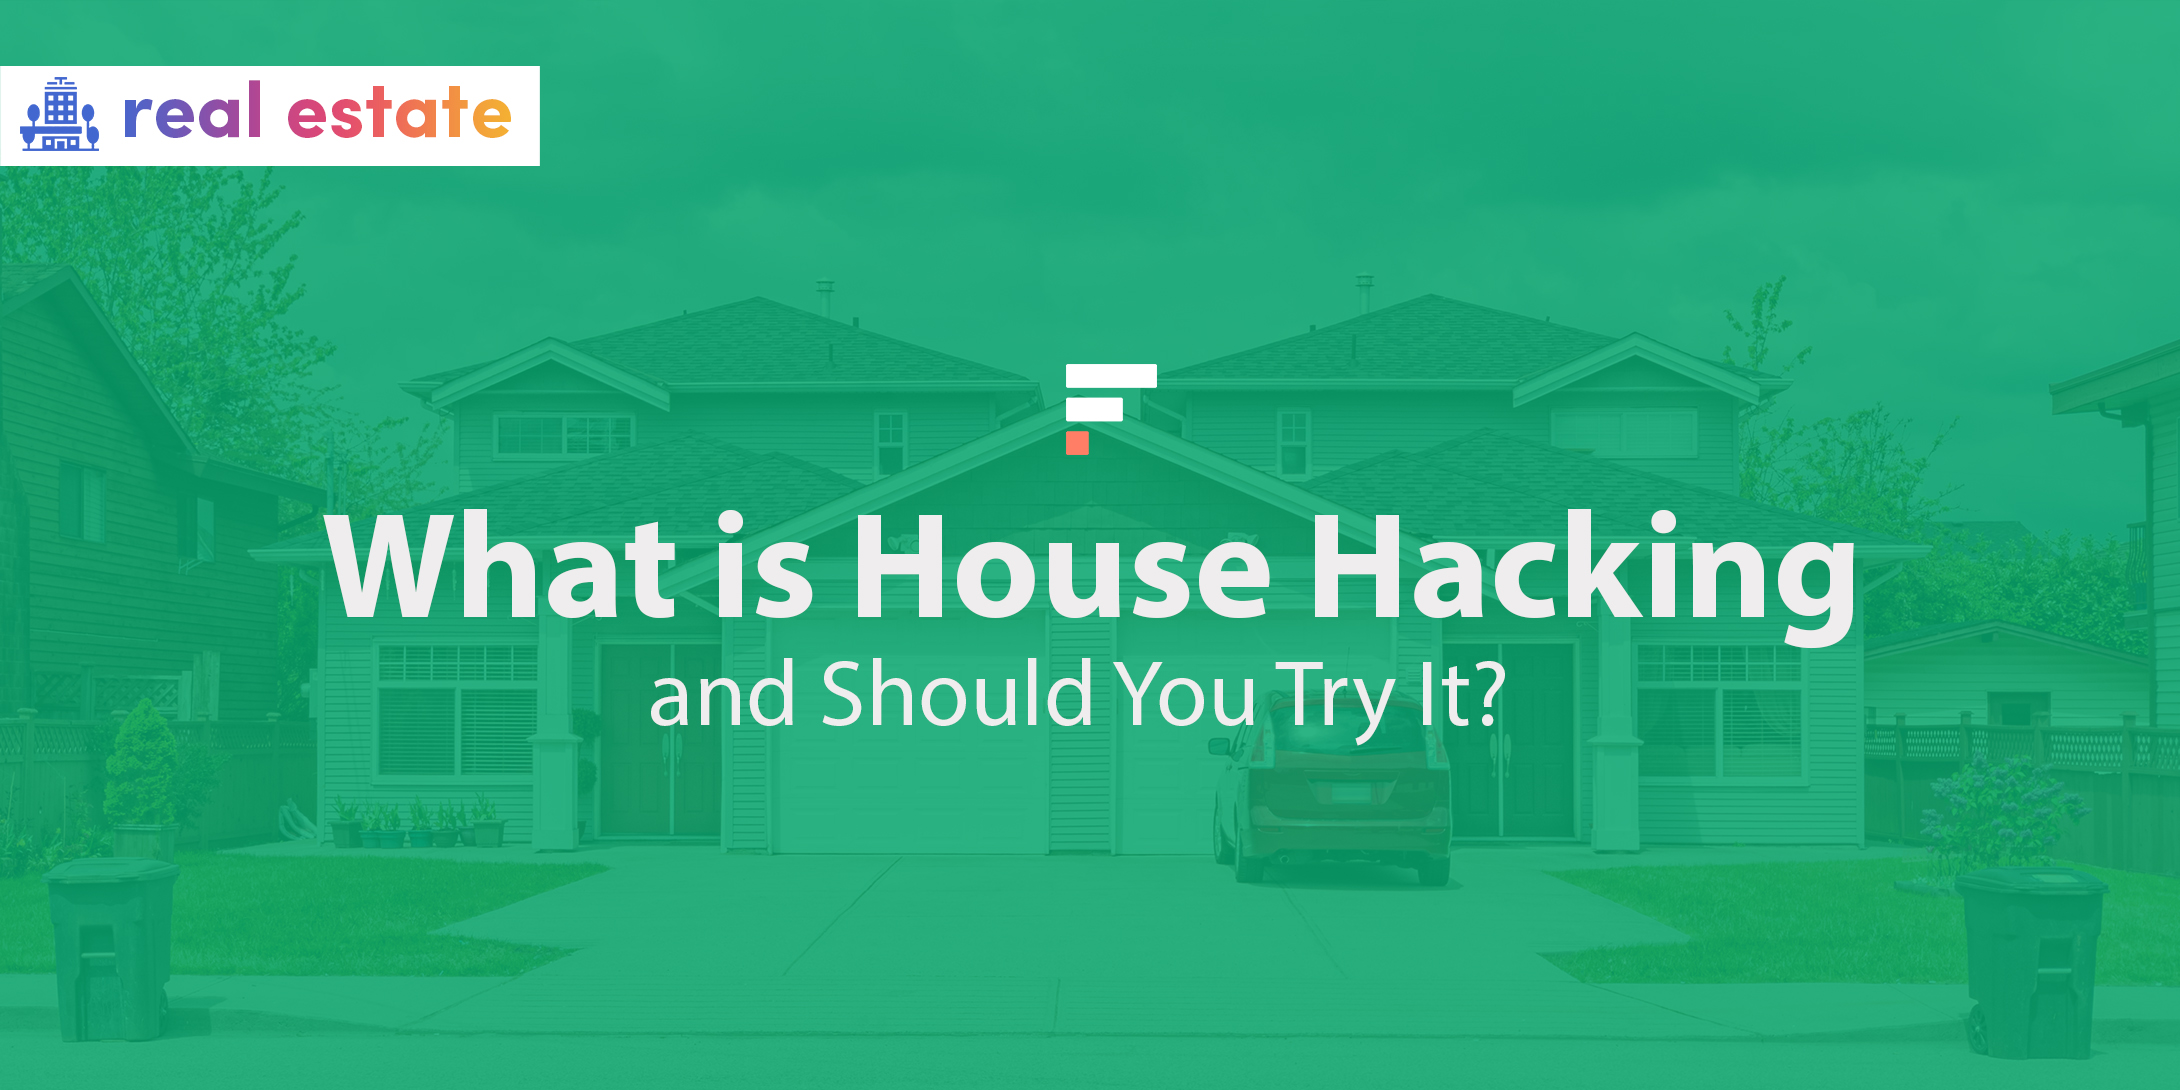 What is House Hacking and Should You Try It?